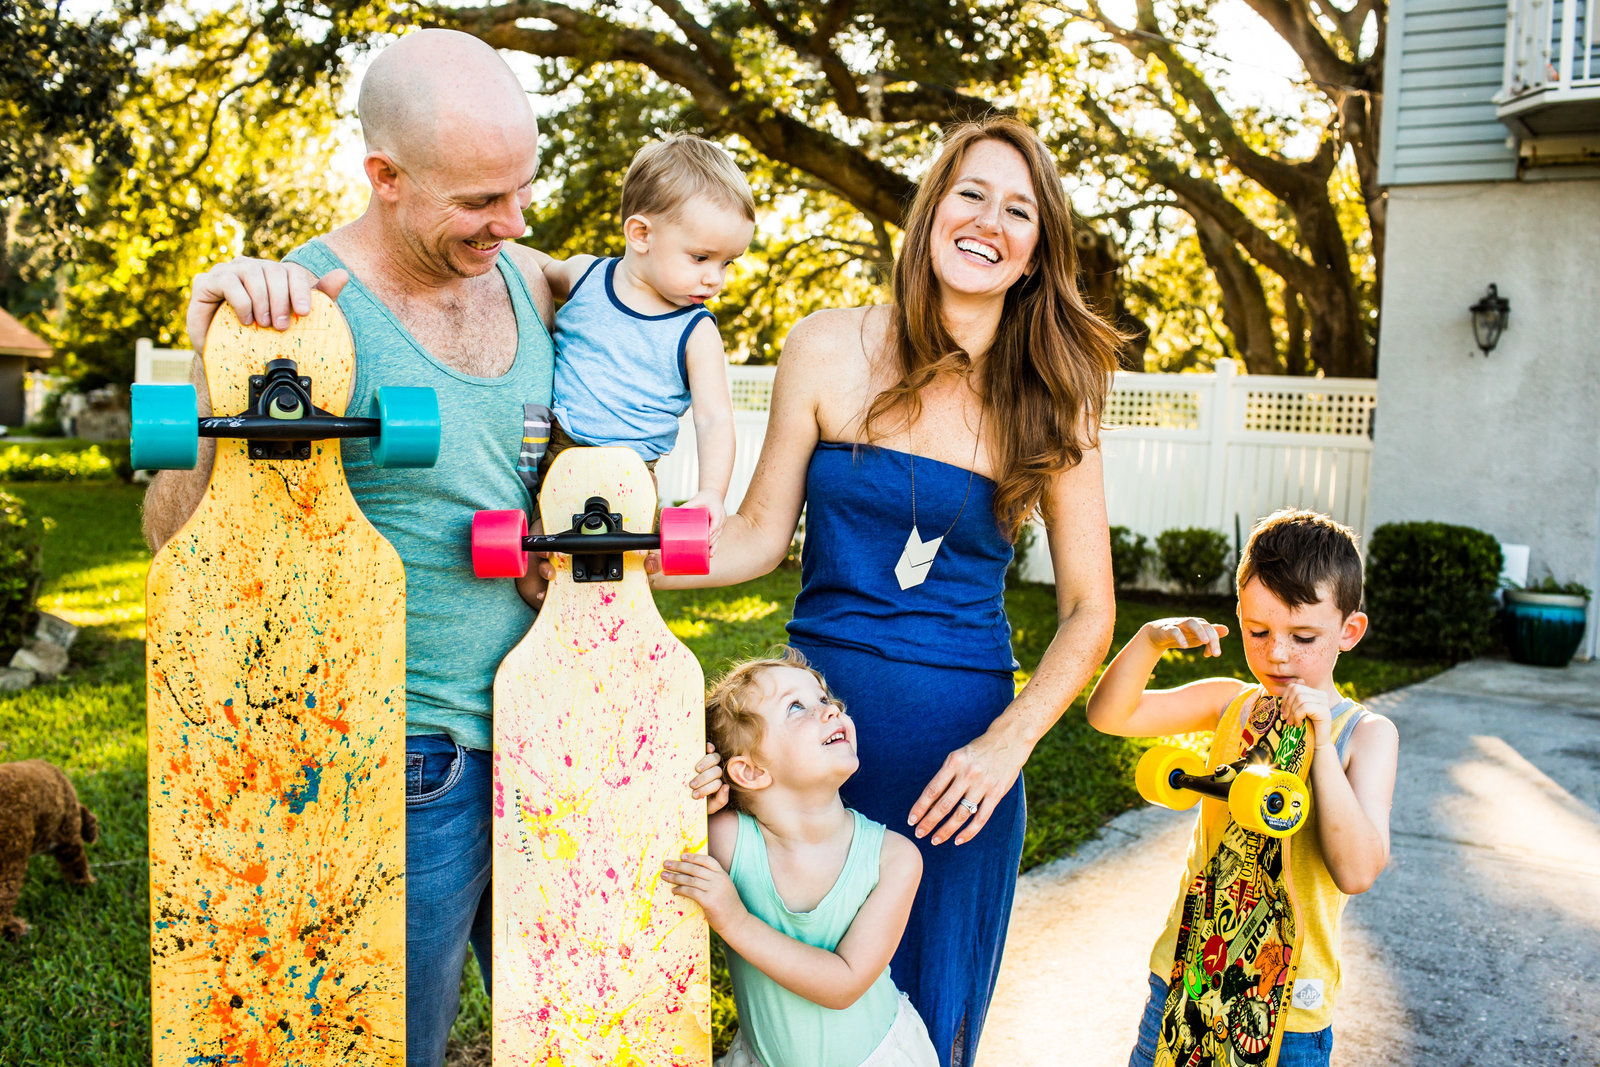 Unique family portraits with skateboards and tanks